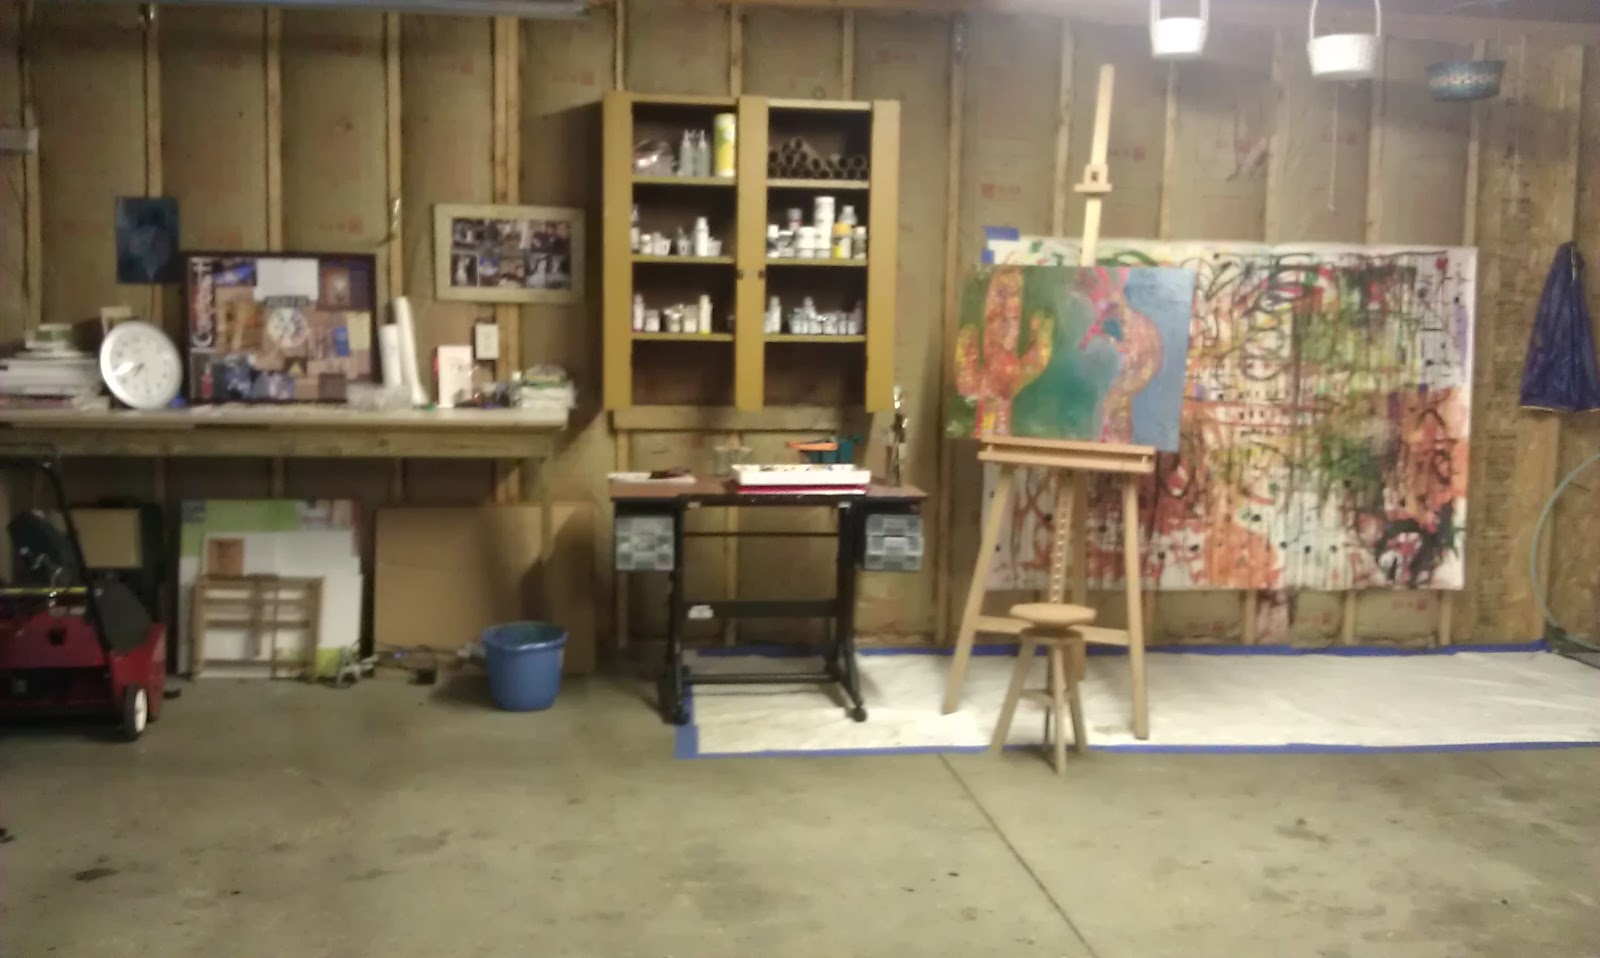 One thousand paintings new art studio for Garage with studio